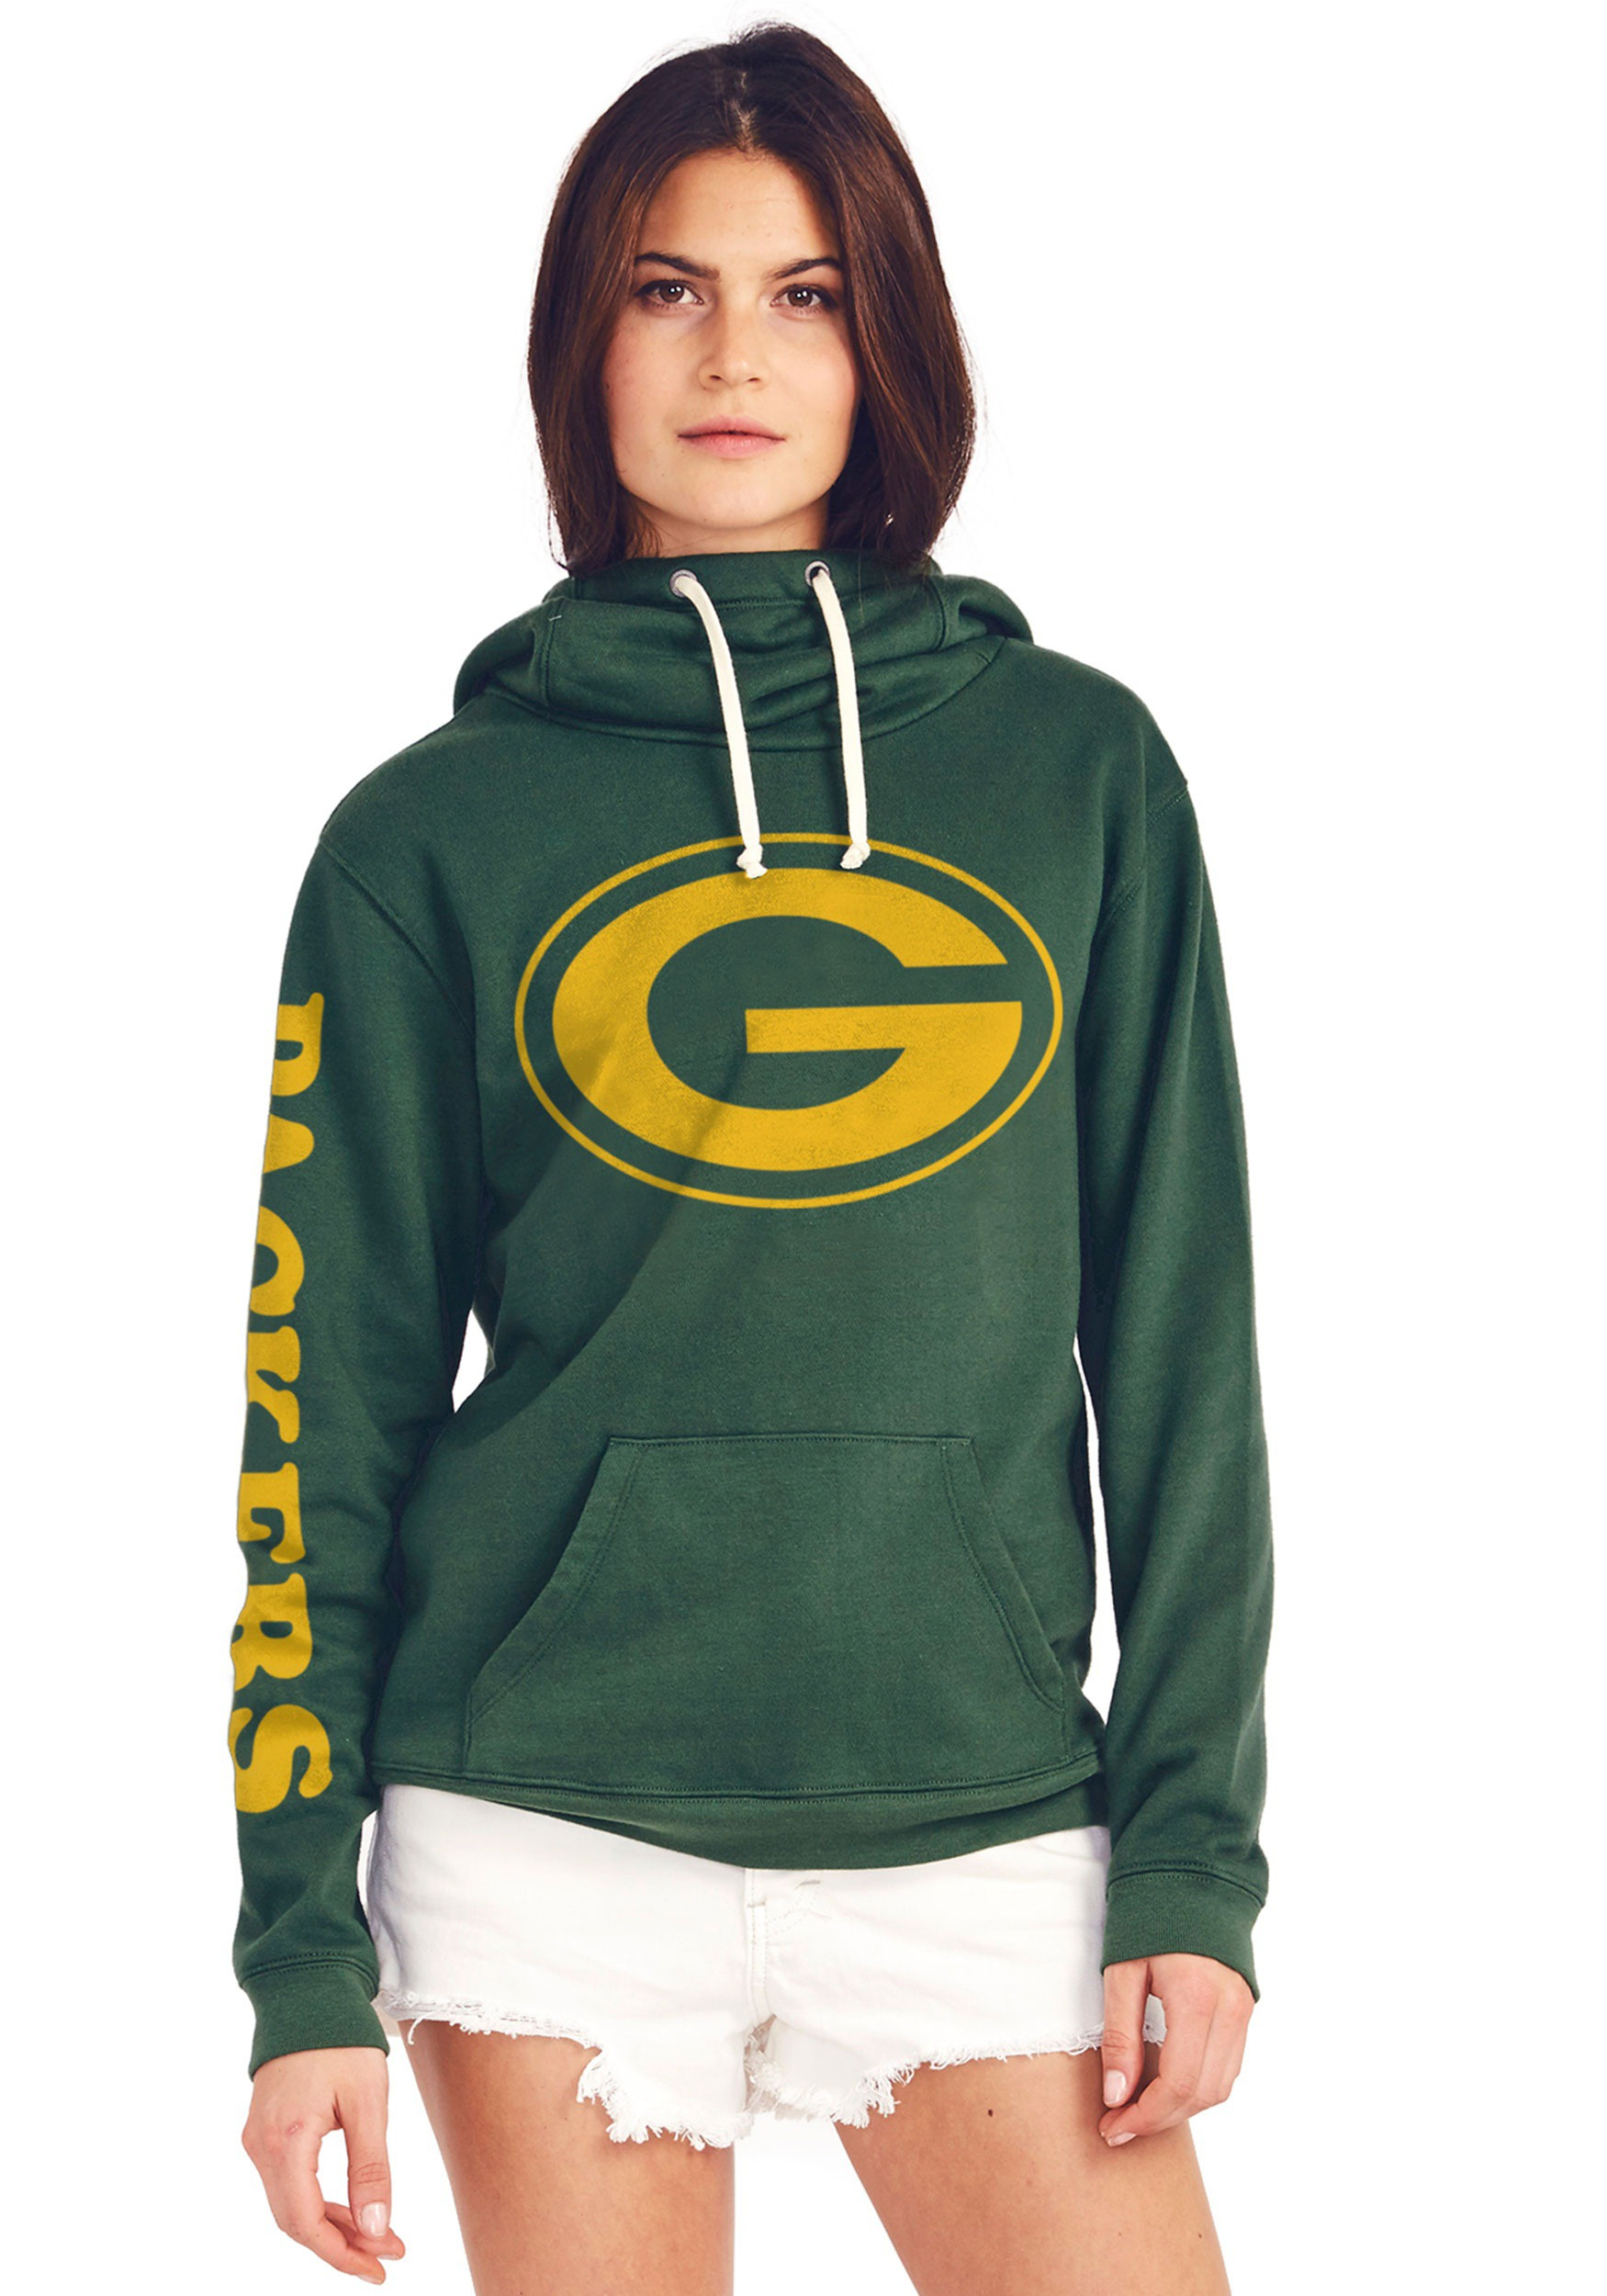 Green Bay Packers Women s Cowl Neck Hooded Sweatshirt 81113603e